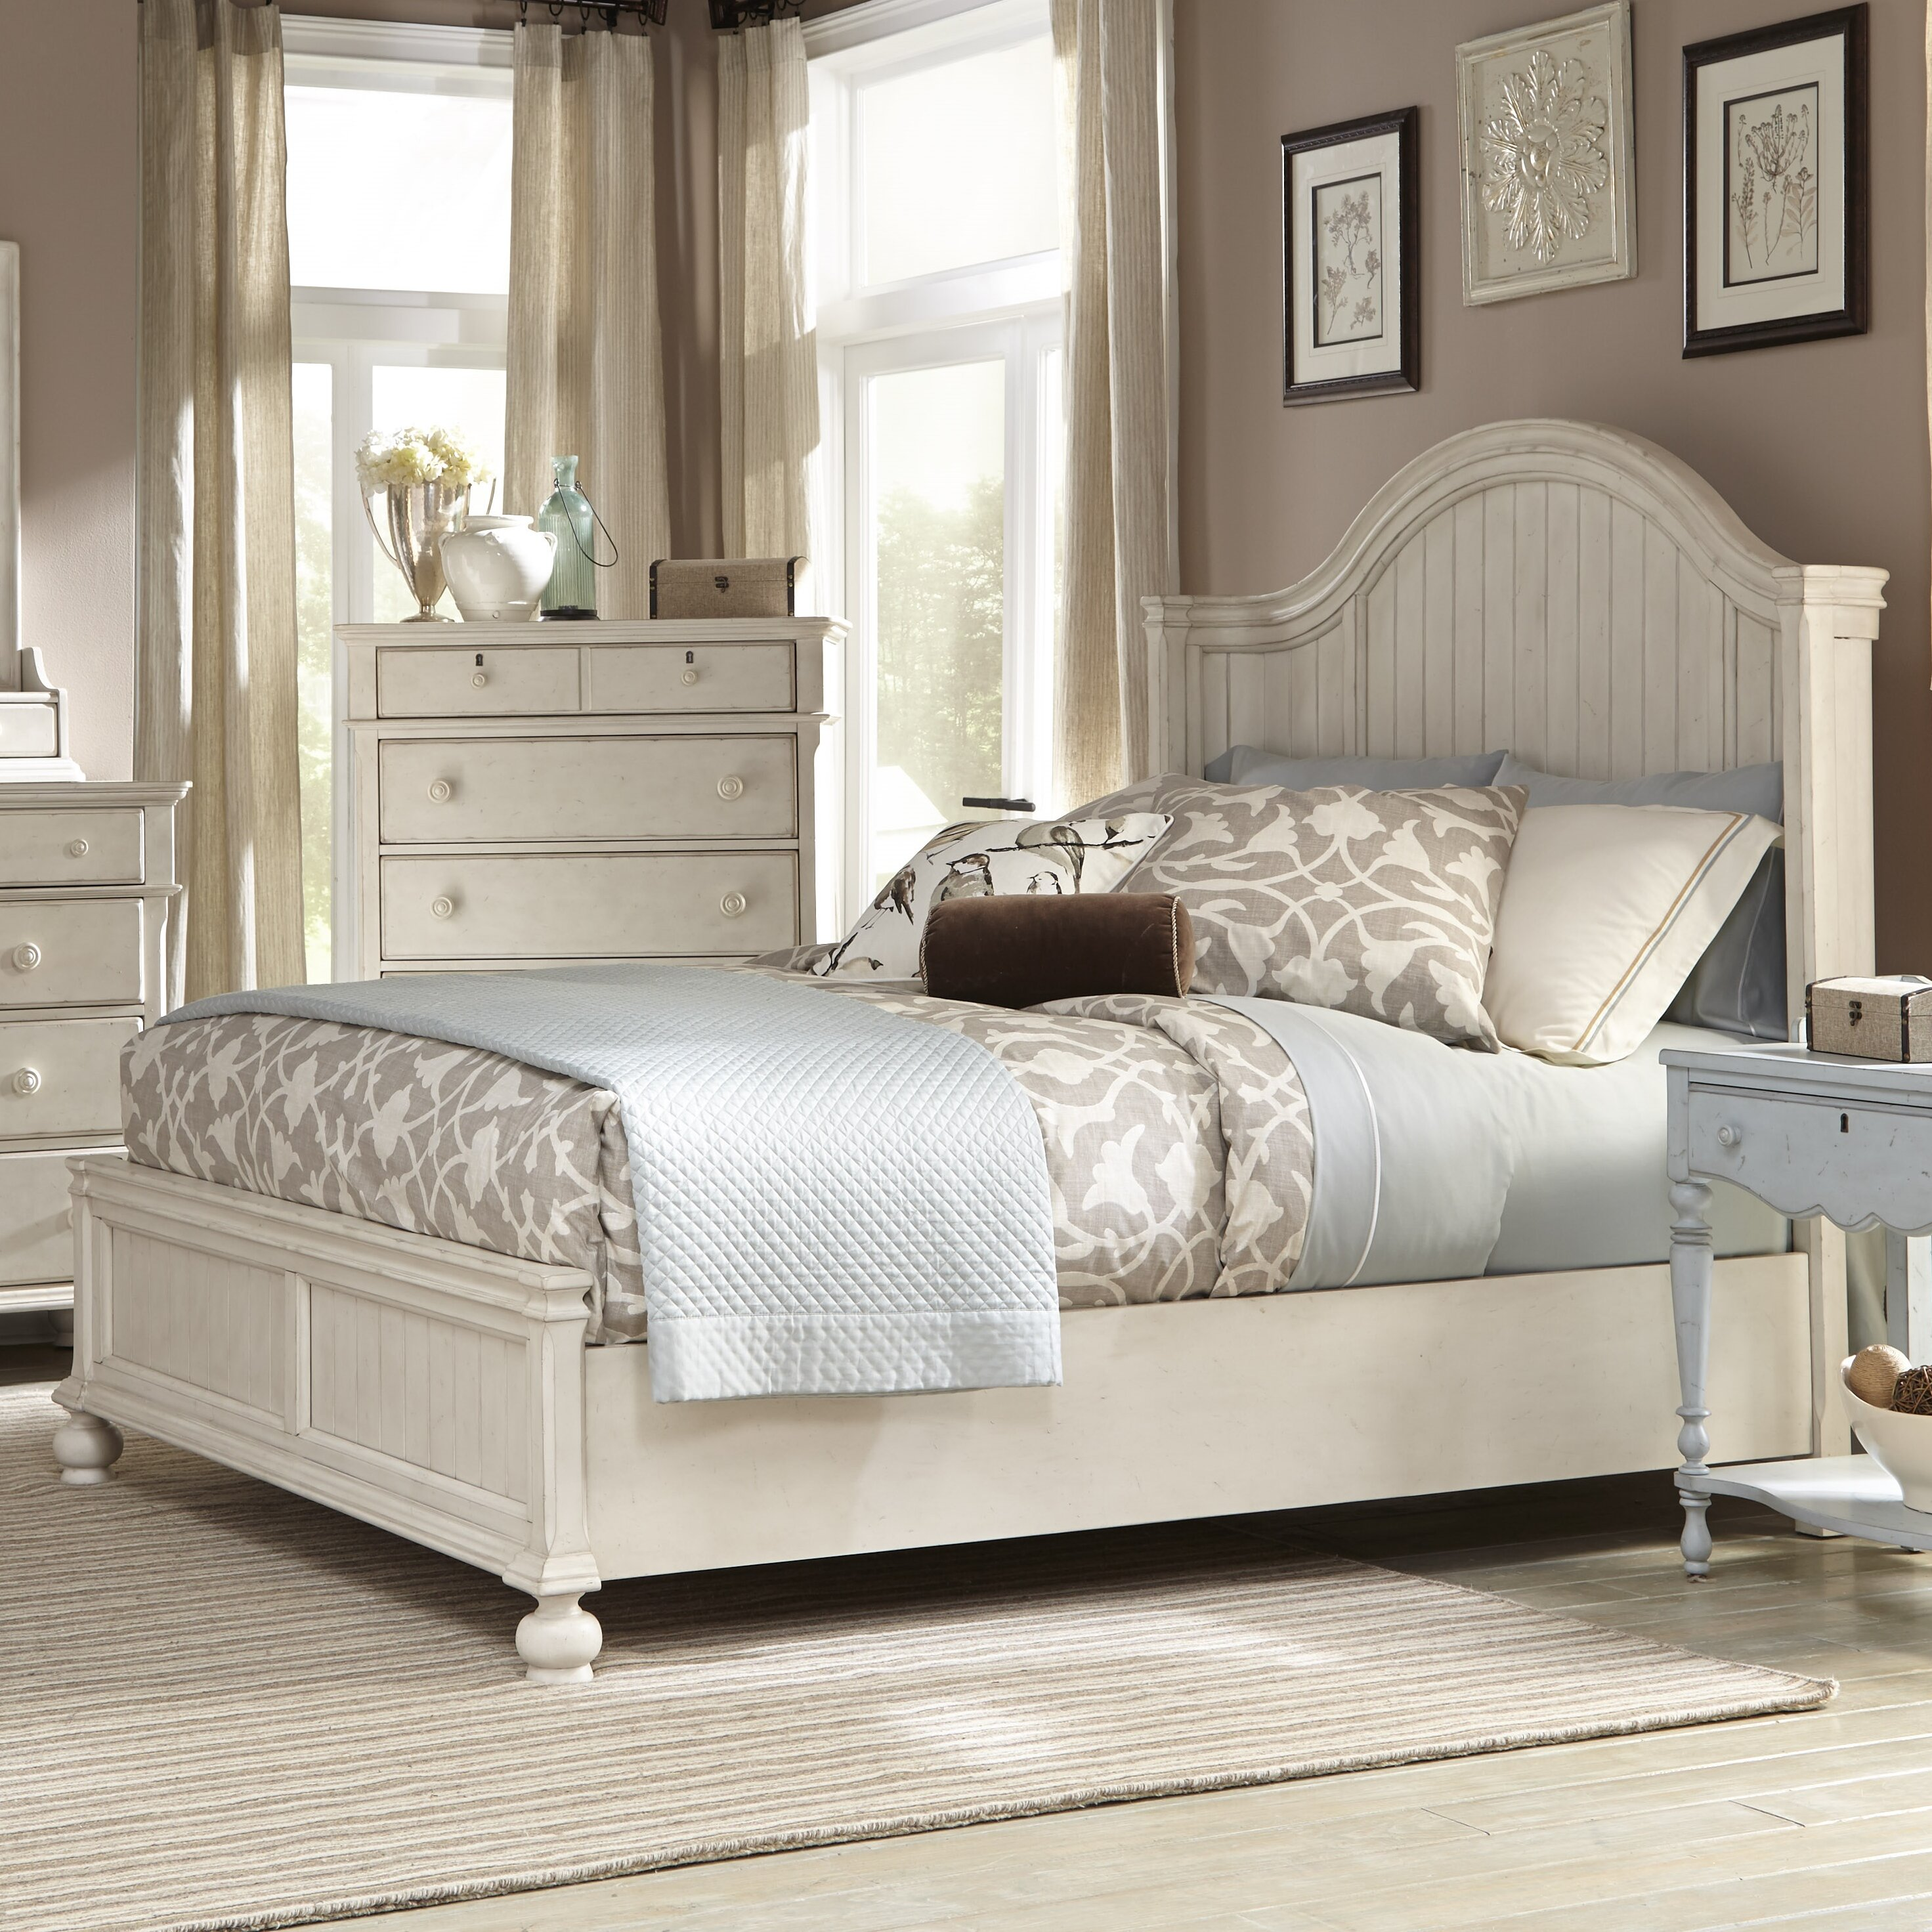 Marvelous photograph of Furniture Bedroom Furniture Queen Sized Beds American Woodcrafters  with #322921 color and 2943x2943 pixels